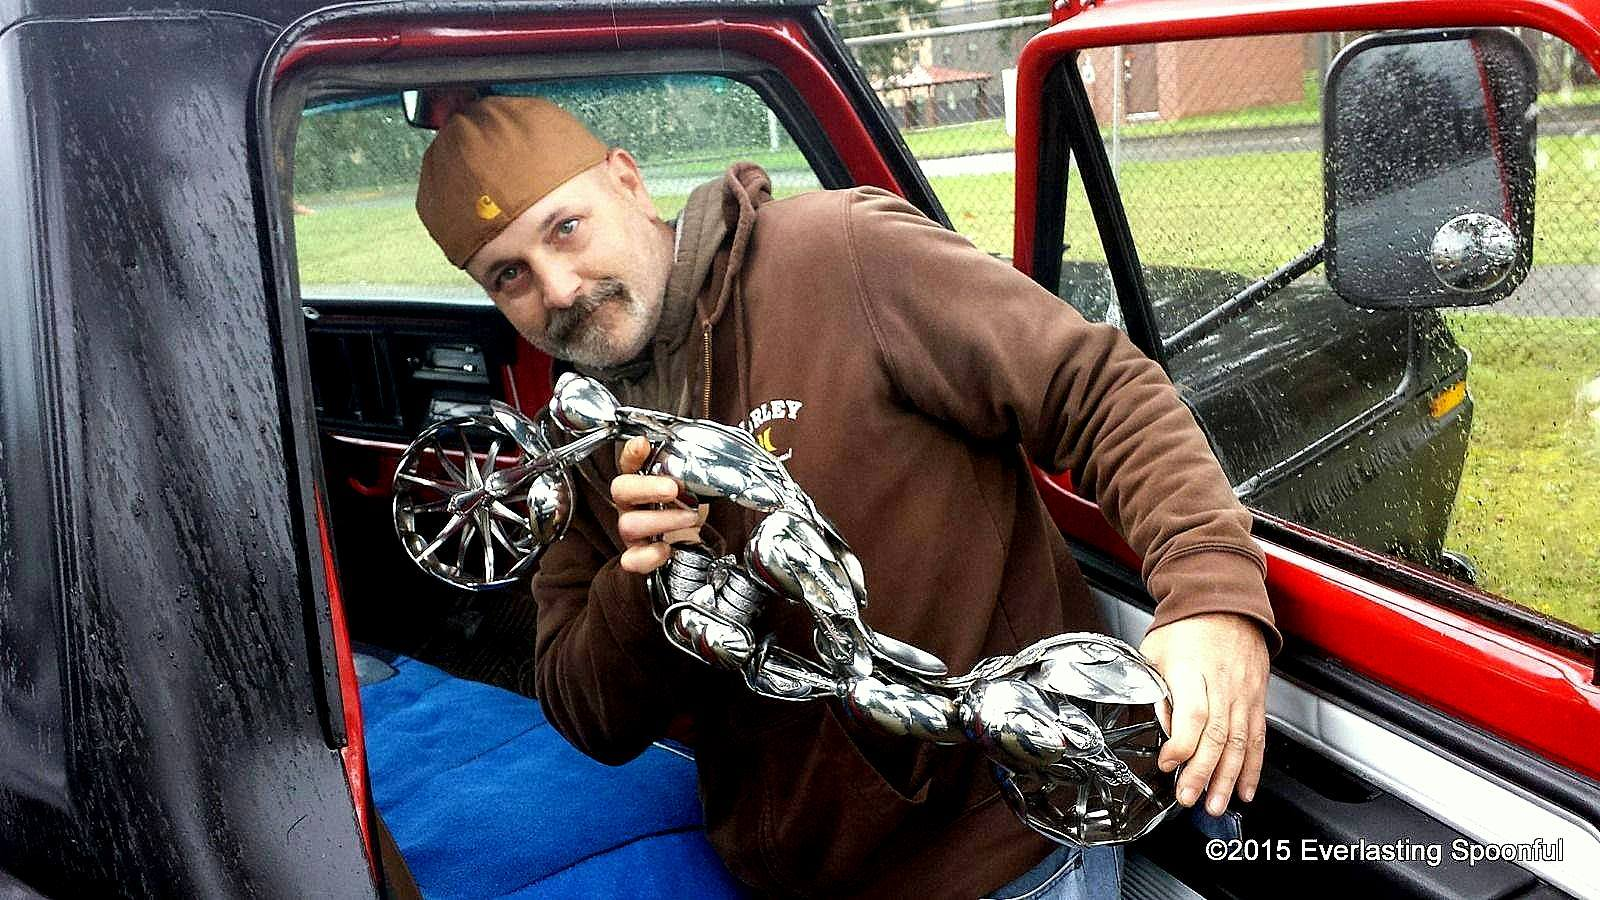 """Artist James Rice, with his spoon motorcycle sculpture """"The Wasp"""""""